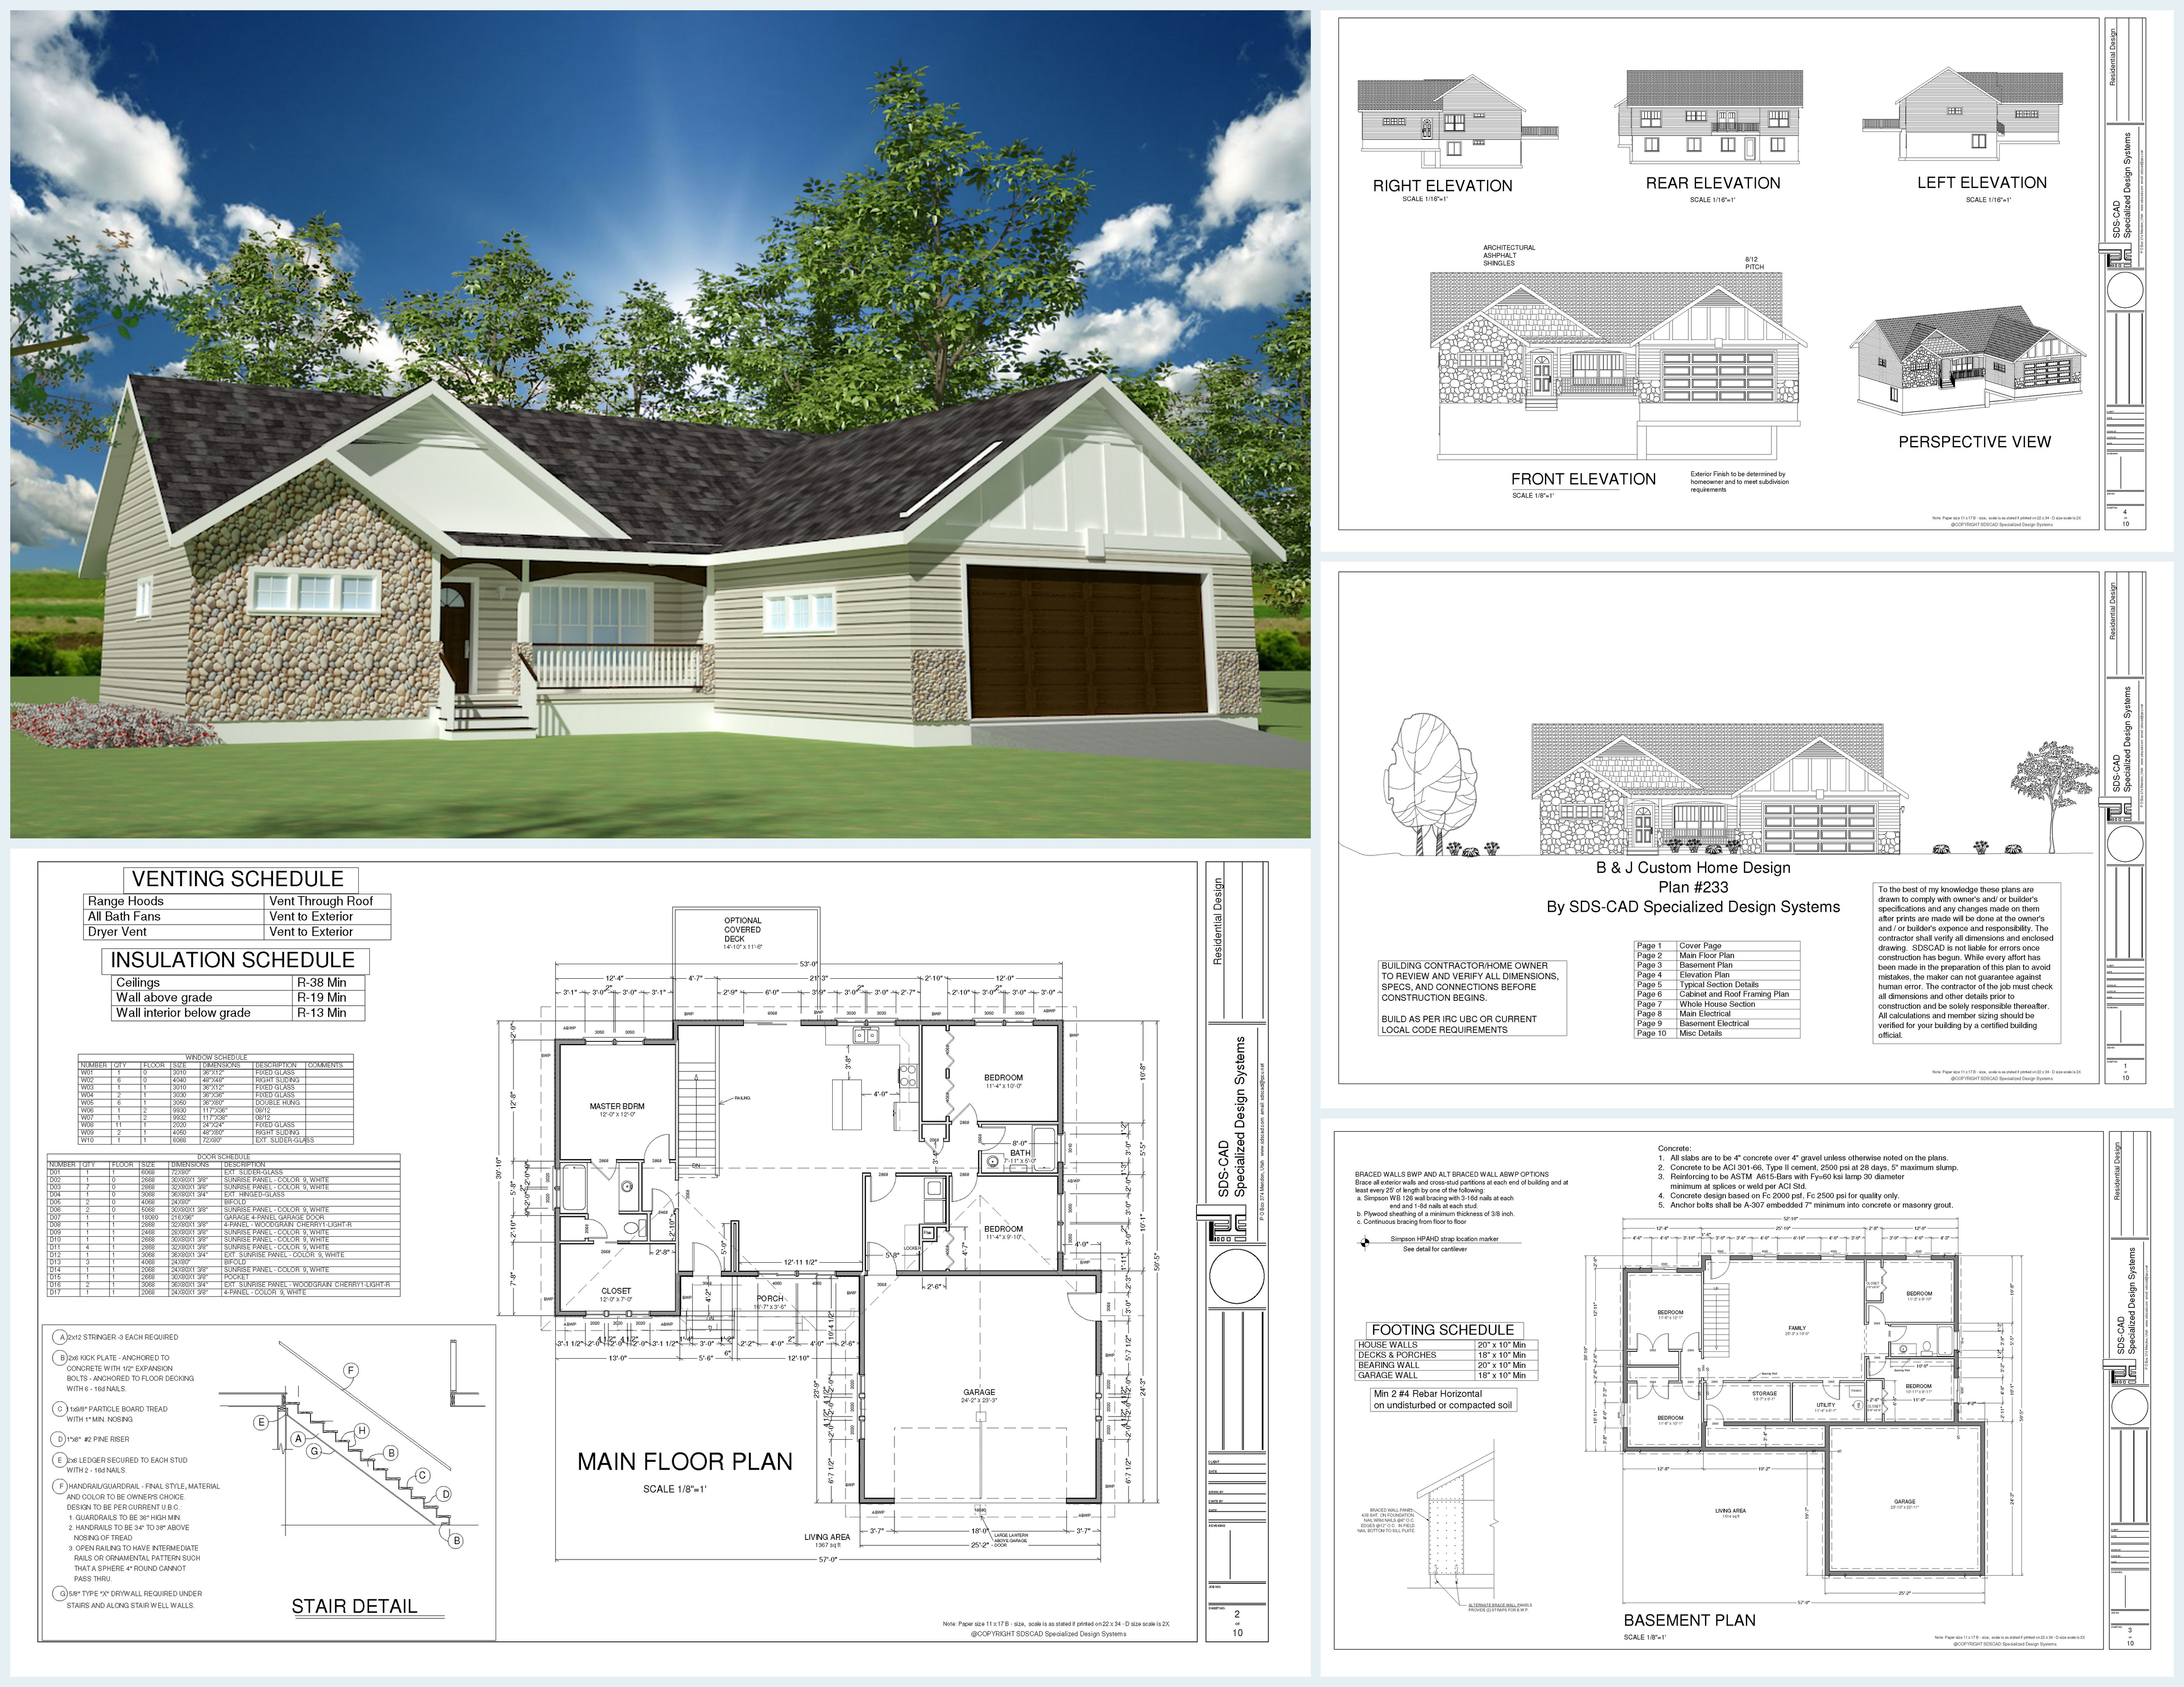 H233 1367 sq ft custom spec house plans in both pdf and dwg file sds plans Design your house plans